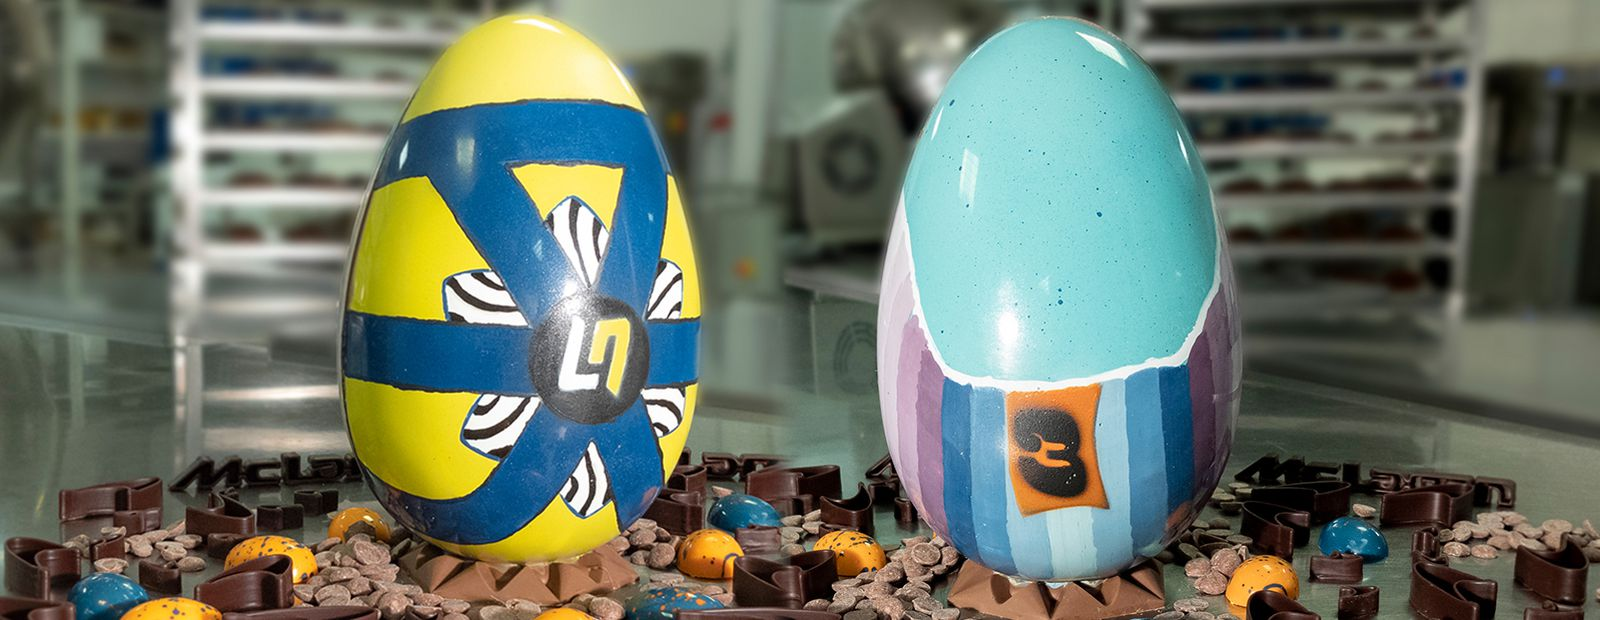 Win a limited-edition McLaren Easter egg